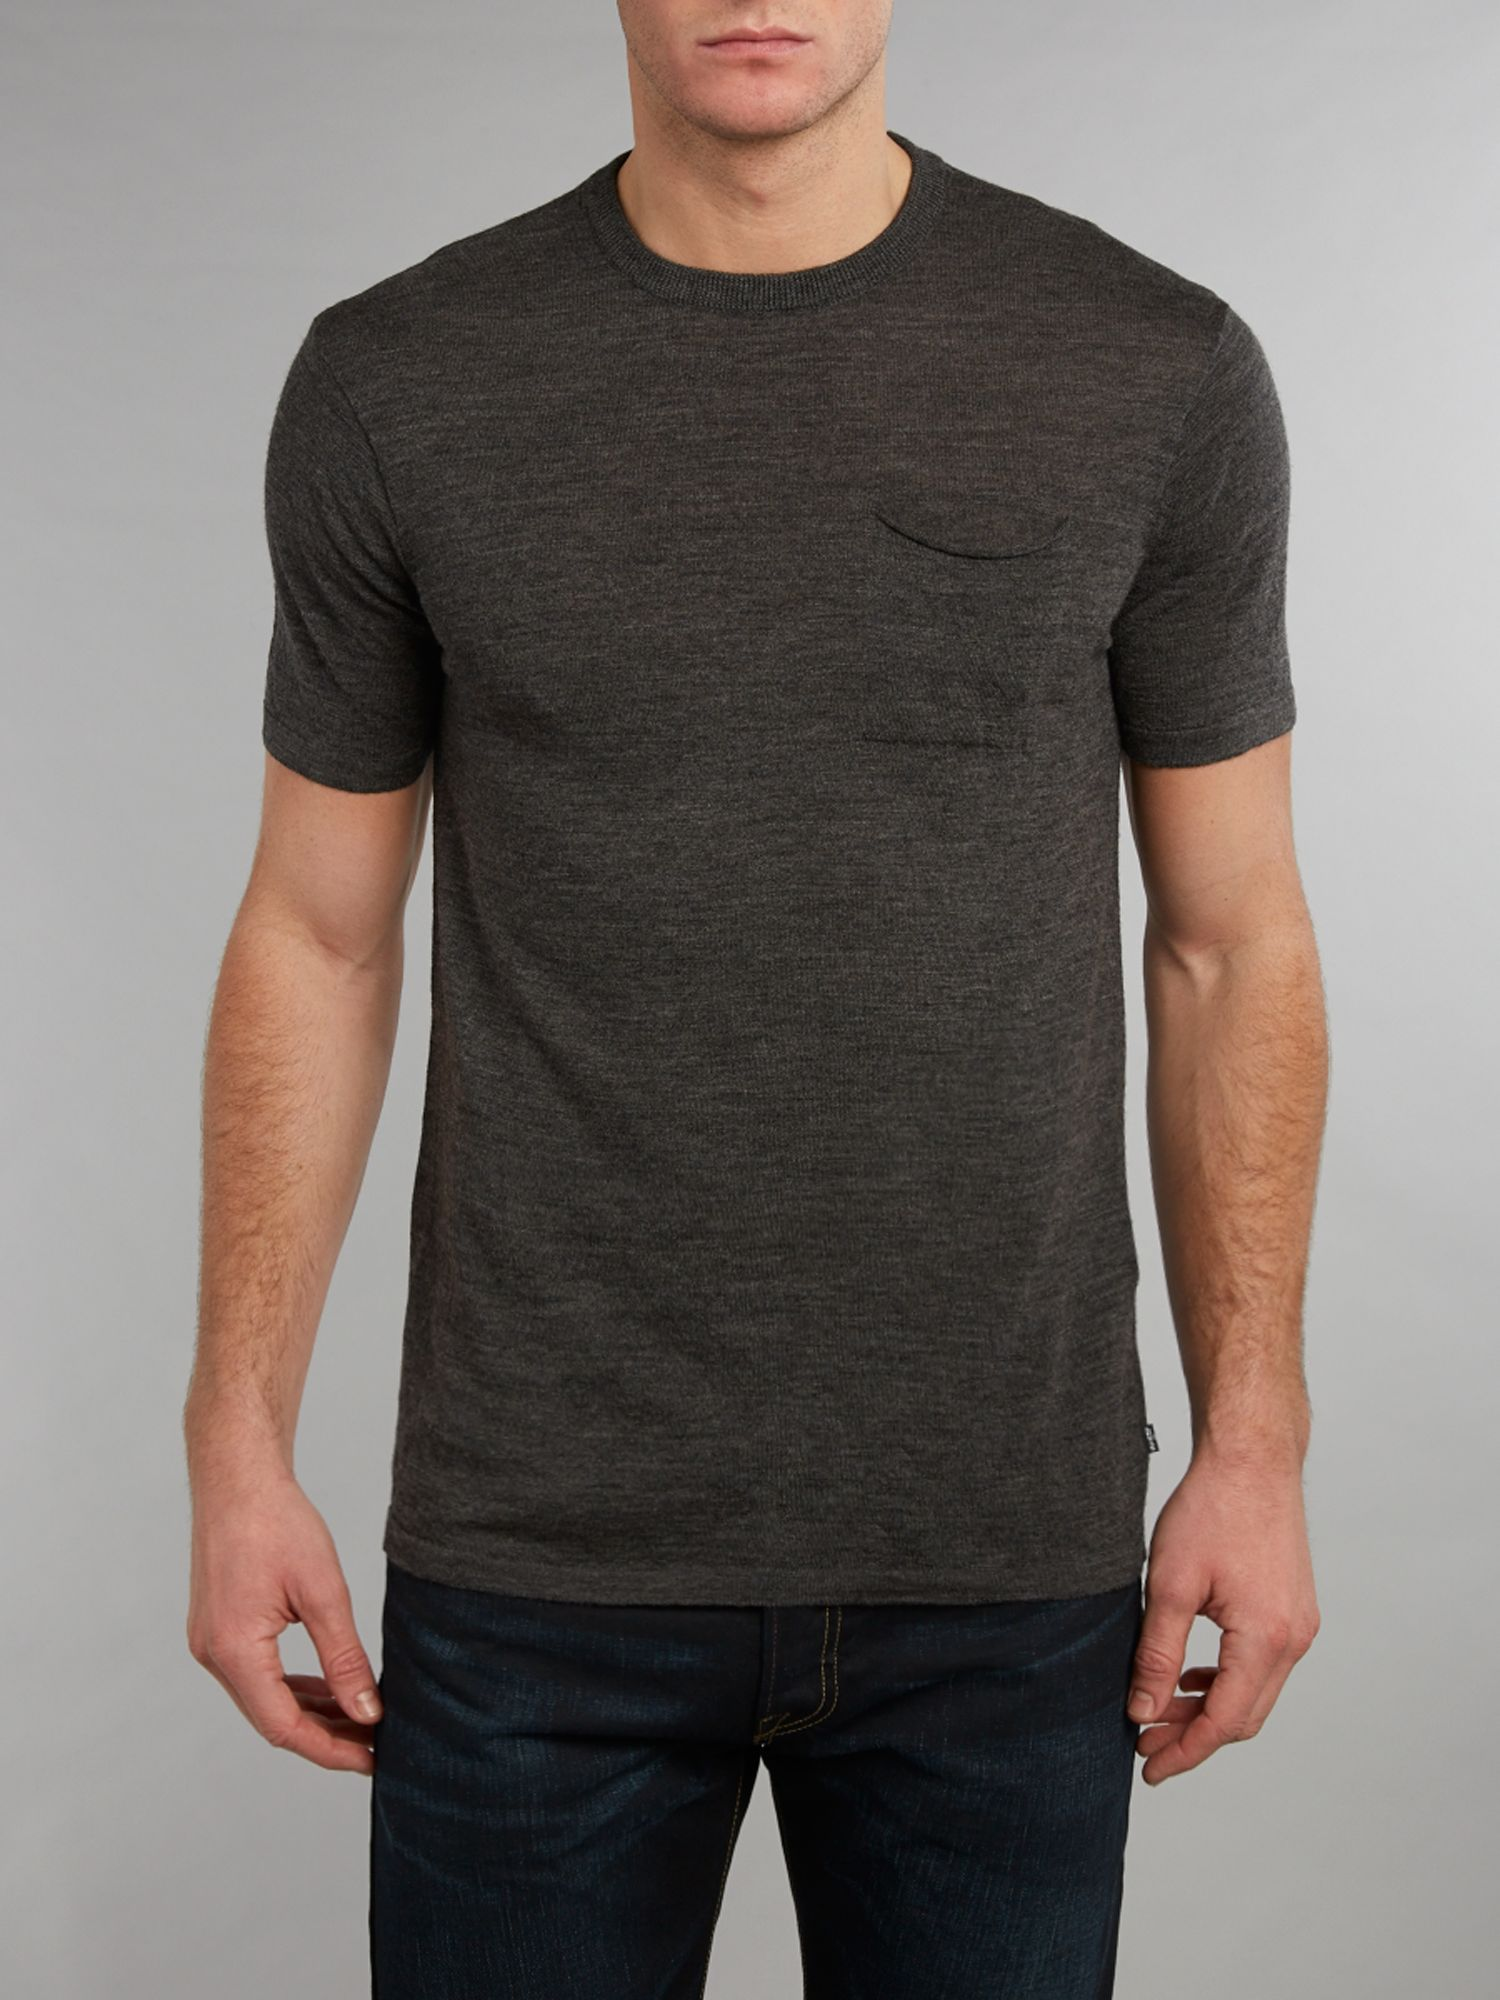 Merino wool t shirt